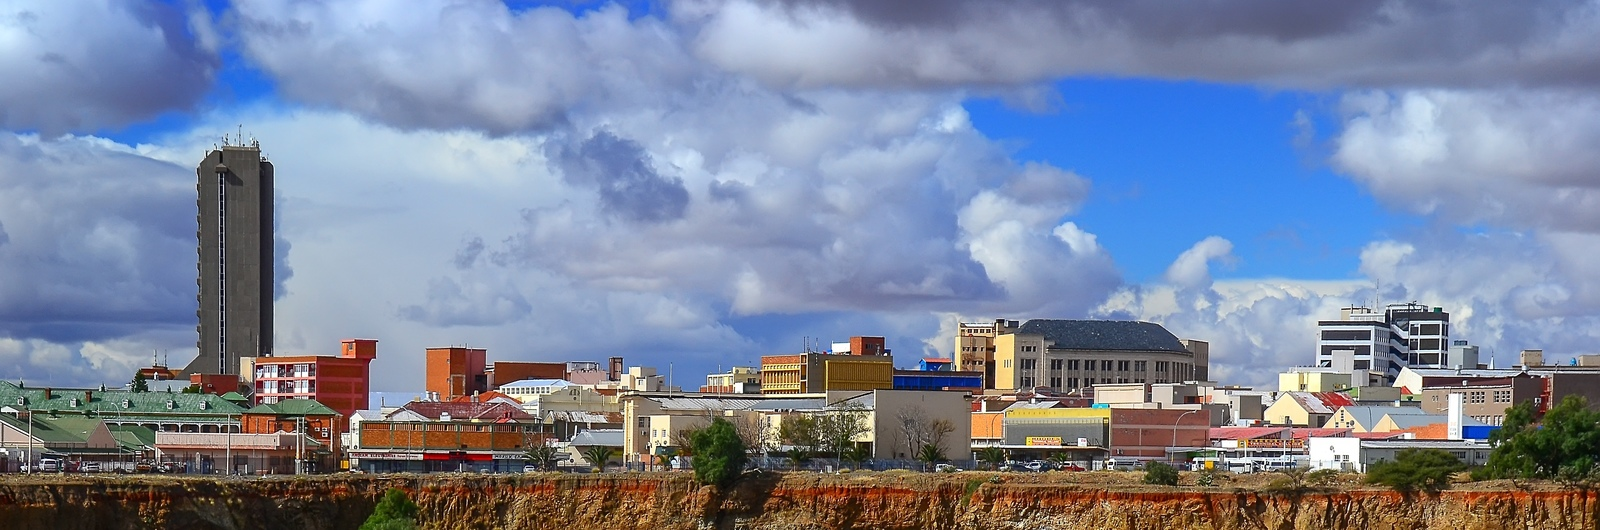 kimberley city header